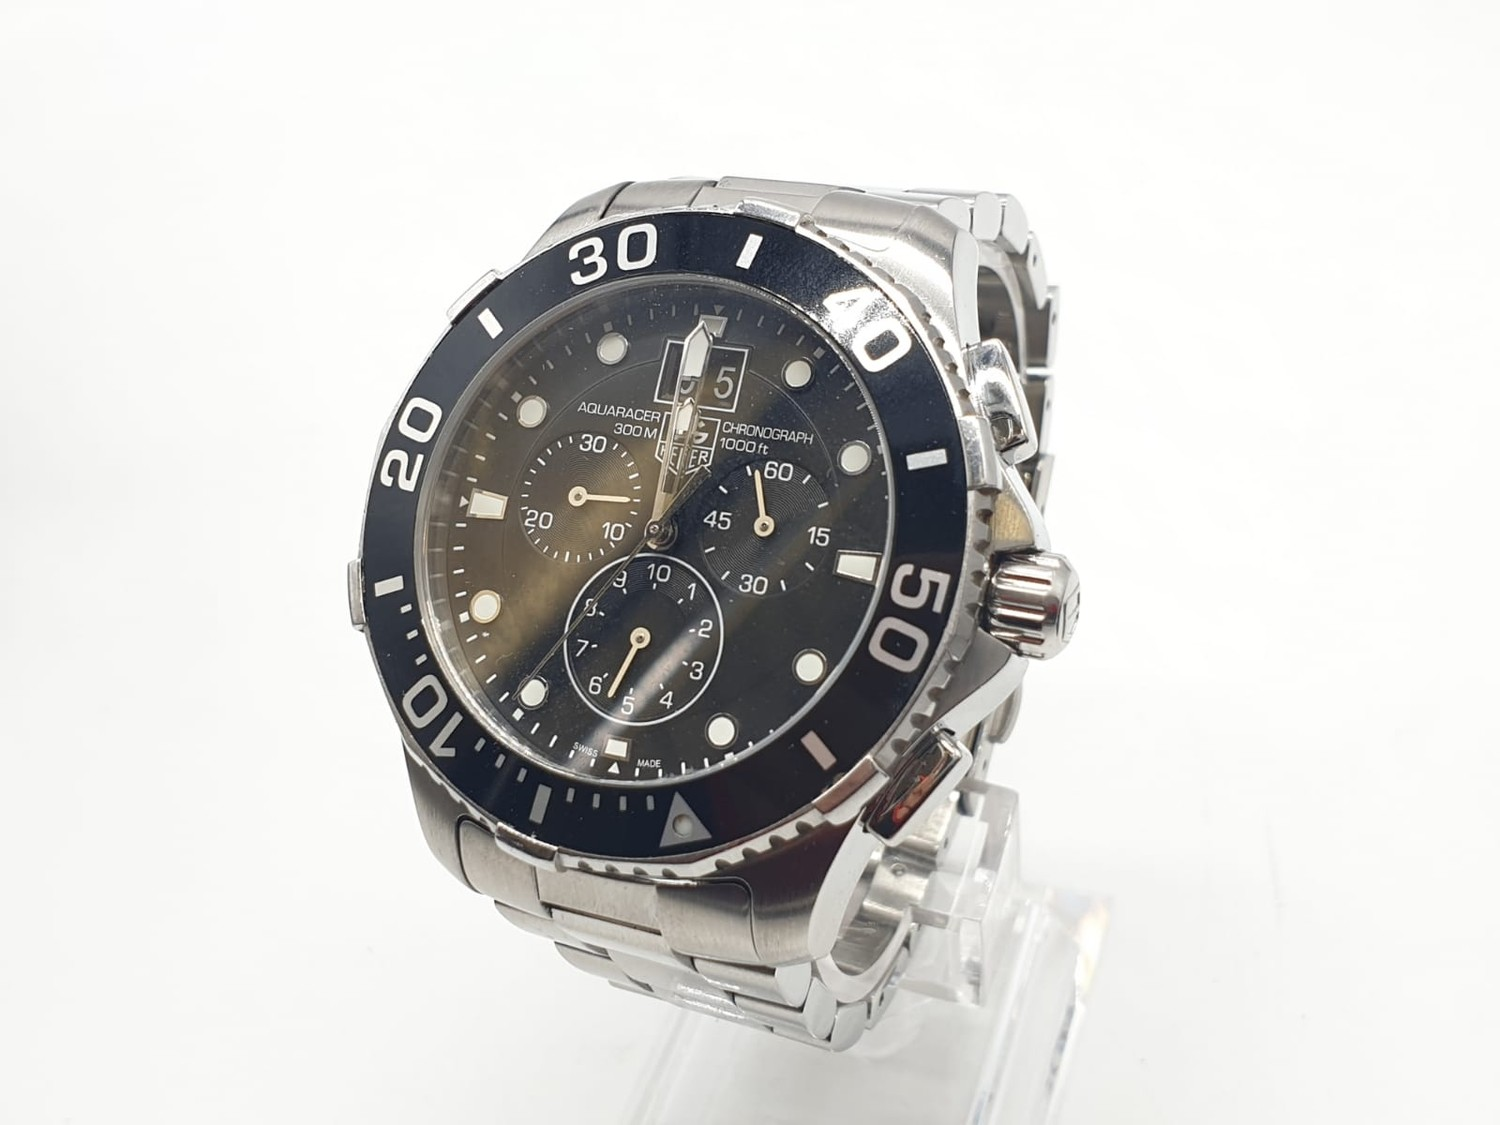 Tag Heuer gents chronograph Aquaracer watch, black face twisted bezel and steel strap, 44mm case - Image 14 of 14